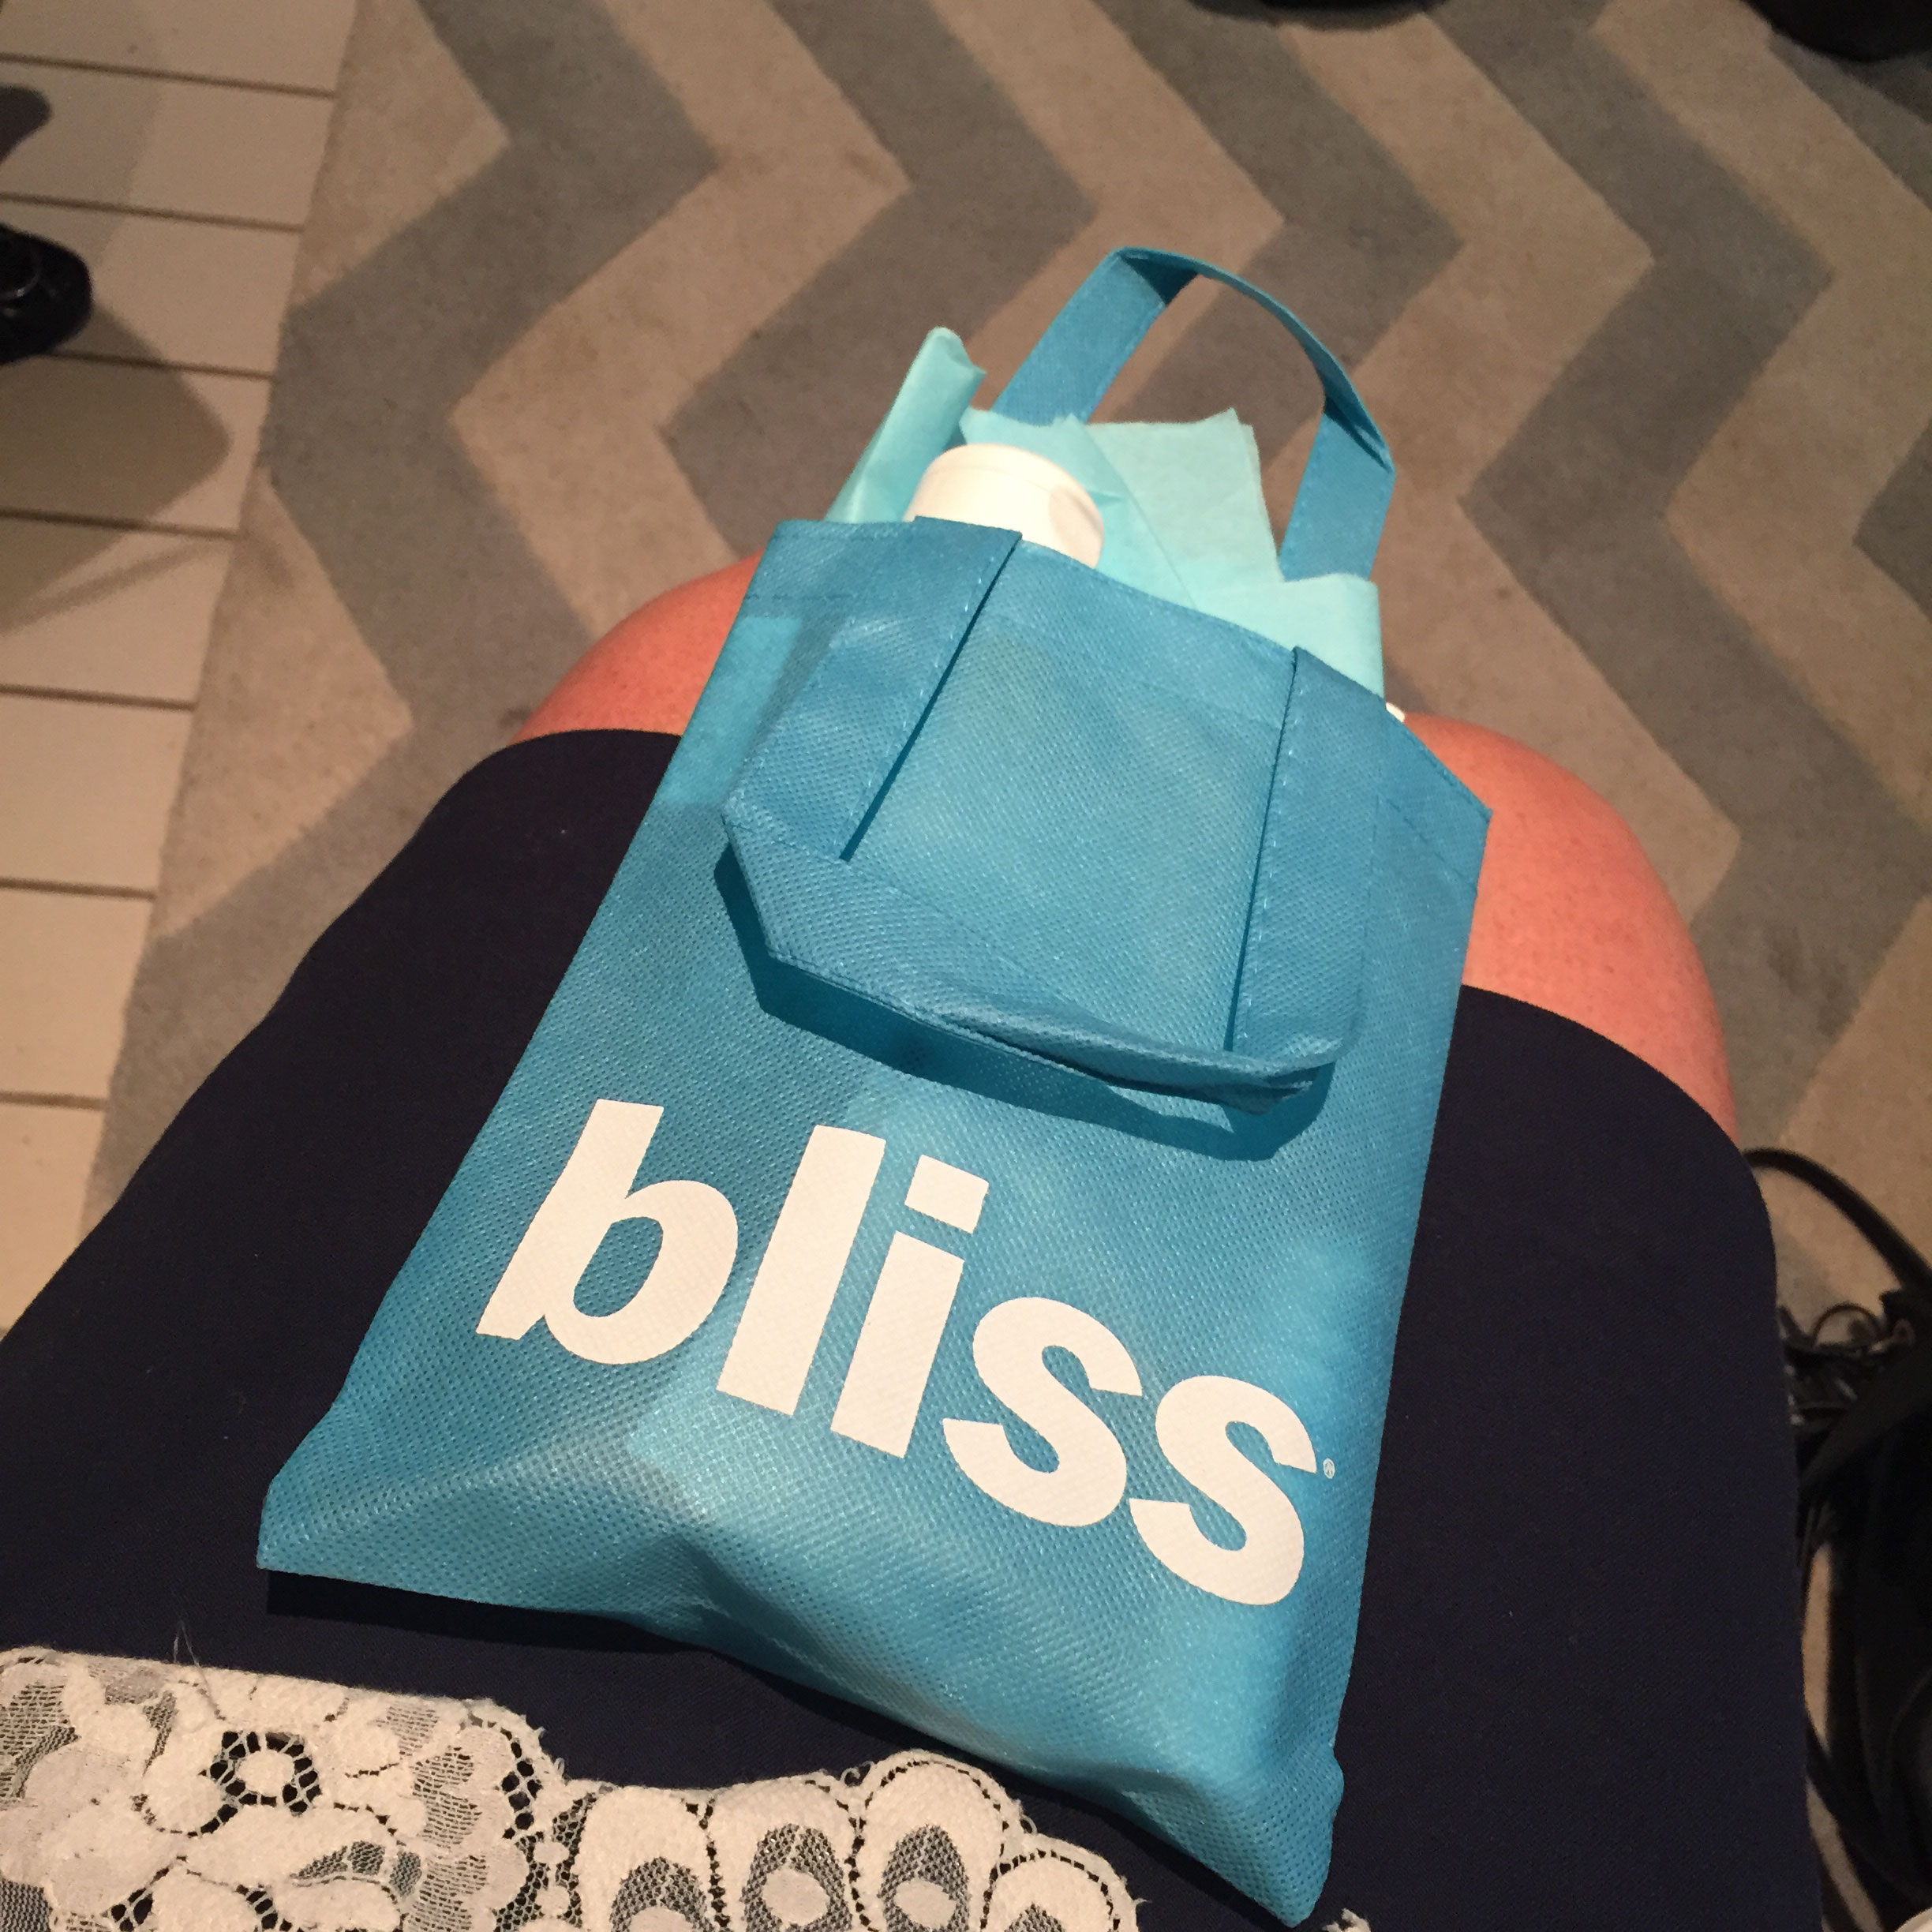 Our first day ended with a tour of Bliss Spa in the W Hotel.